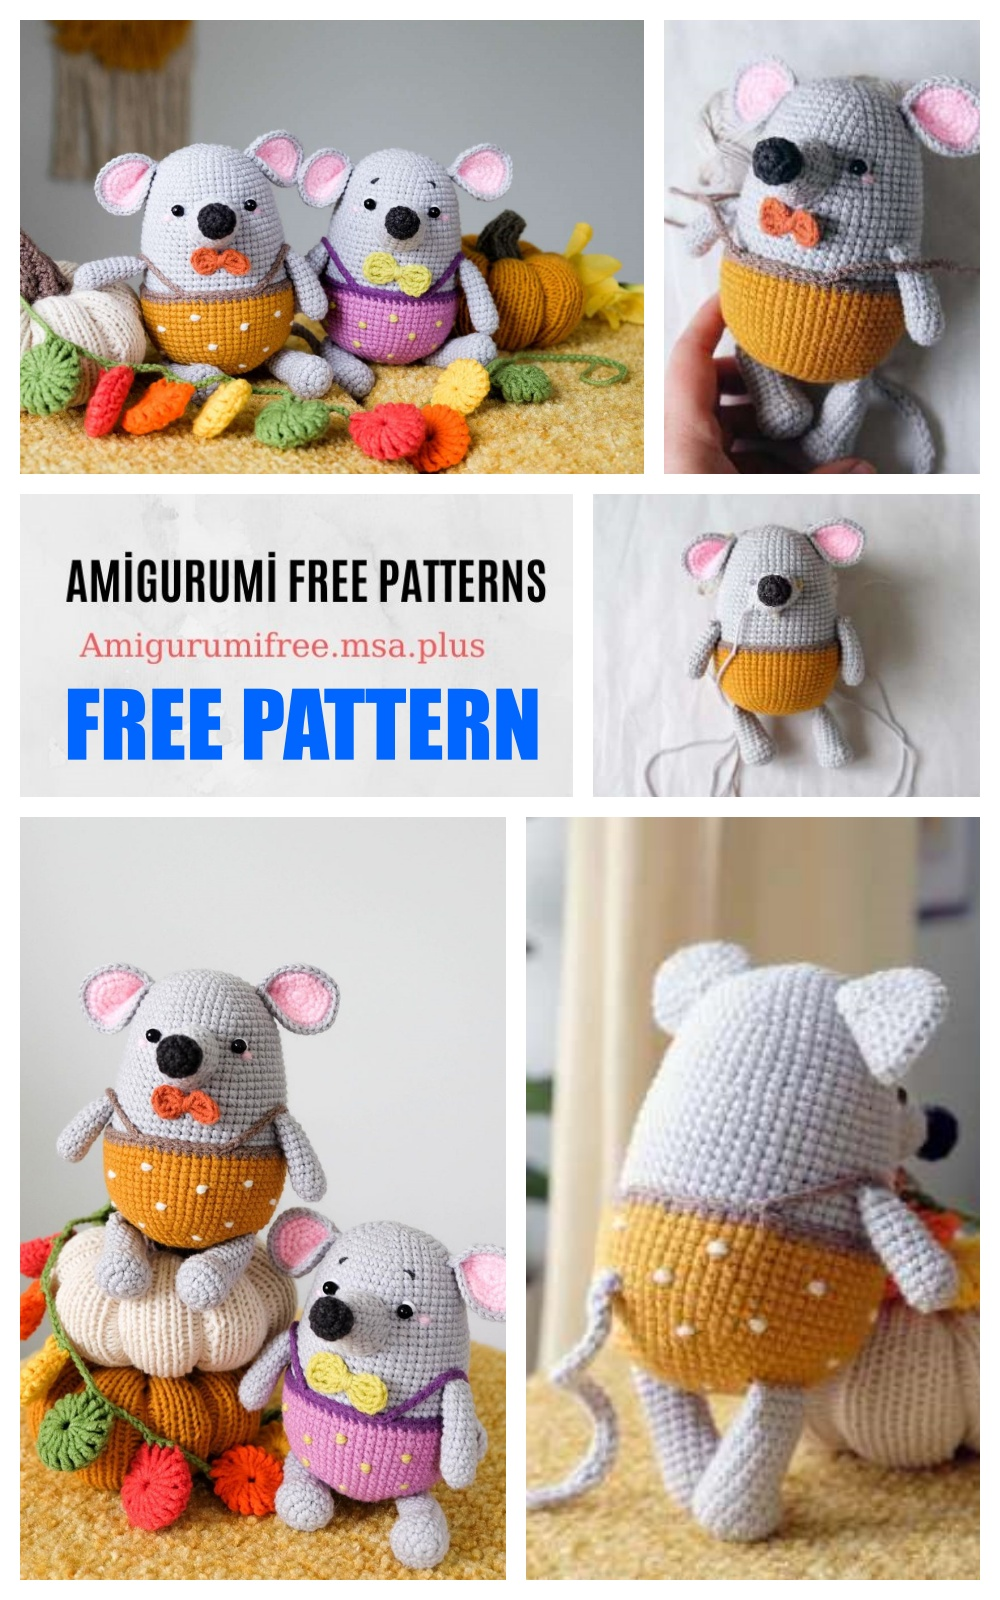 Crochet Tiny Pink Forest Mouse Amigurumi Free Pattern - Amigurumi Crochet  Mouse Toy Softies Free Patterns • DIY How To | 1600x1000